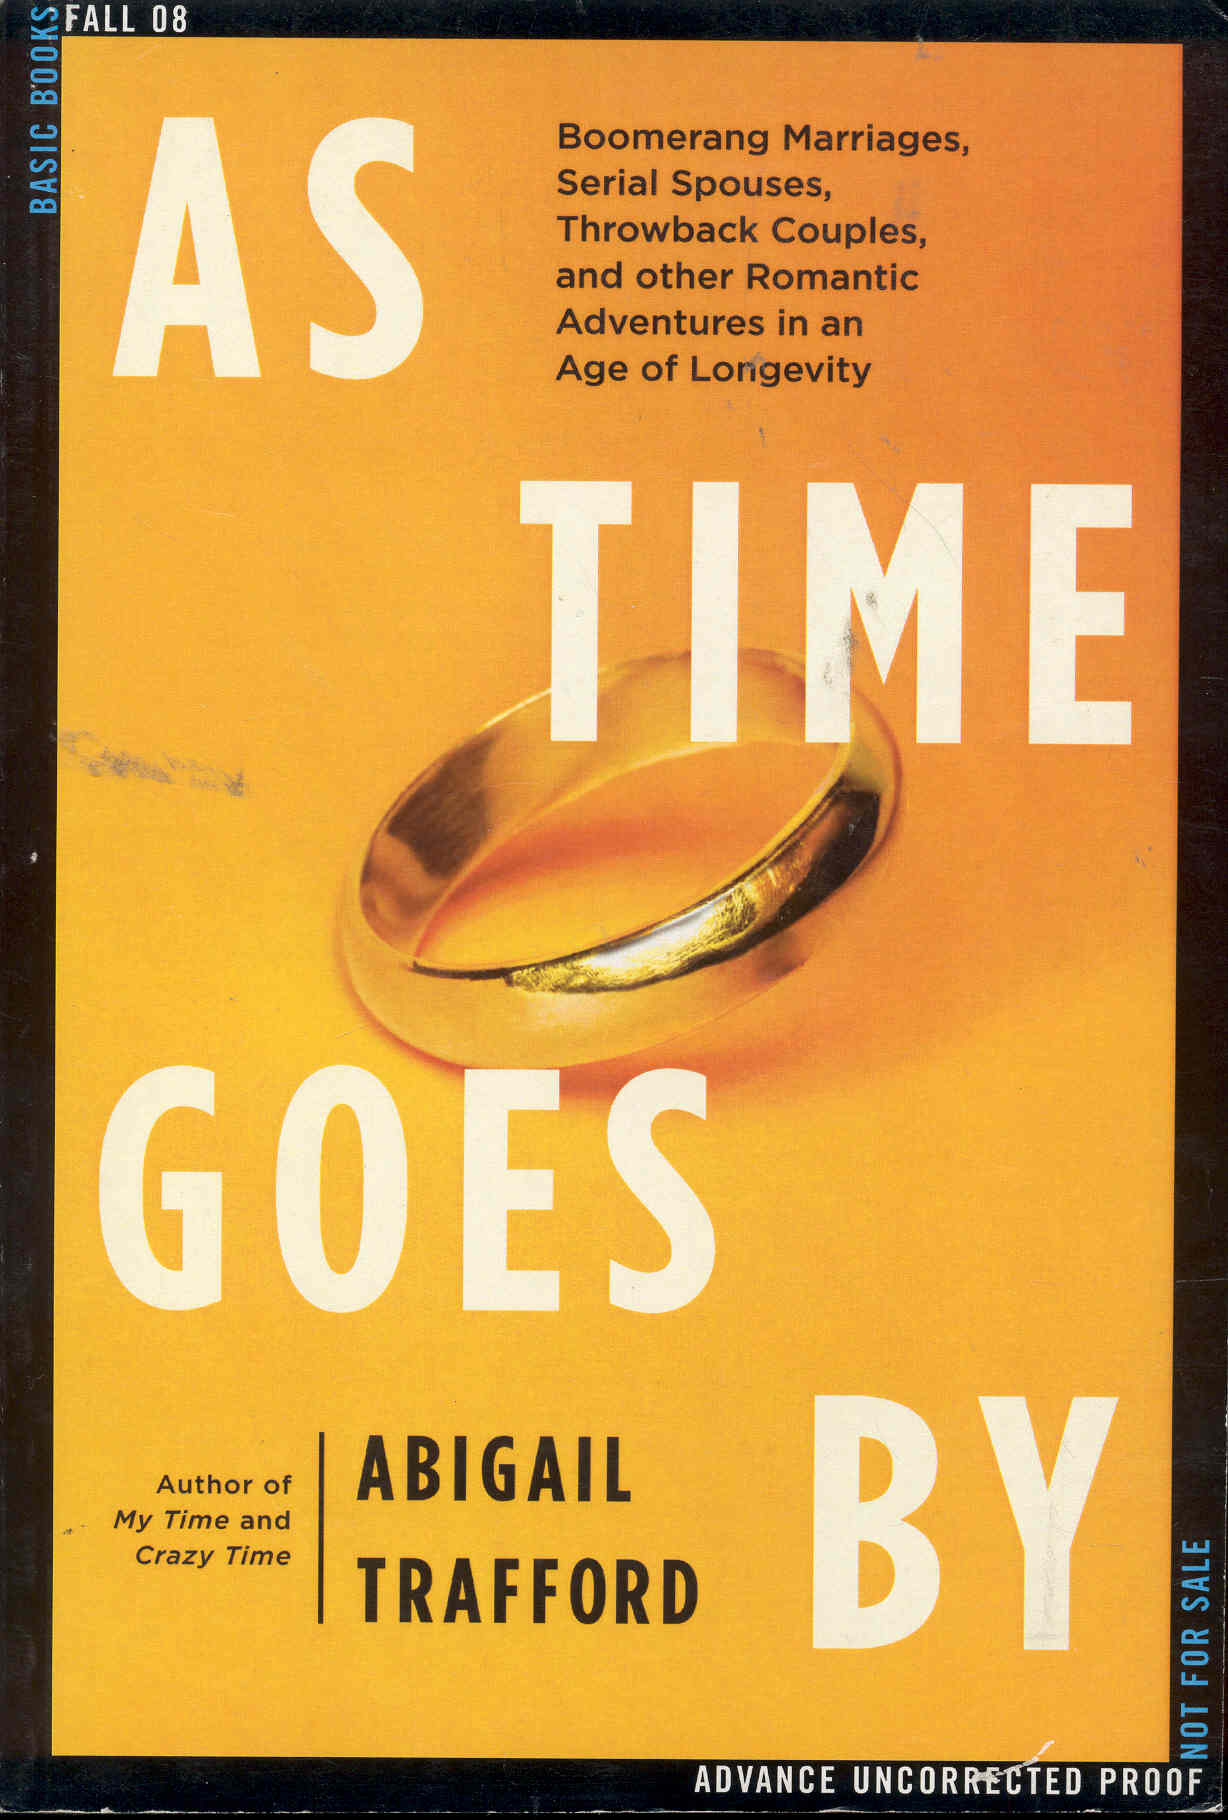 Image for As Time Goes By: Boomerang Marriages, Serial Spouses, Throwback Couples, and Other Romantic Adventures in an Age of Longevity